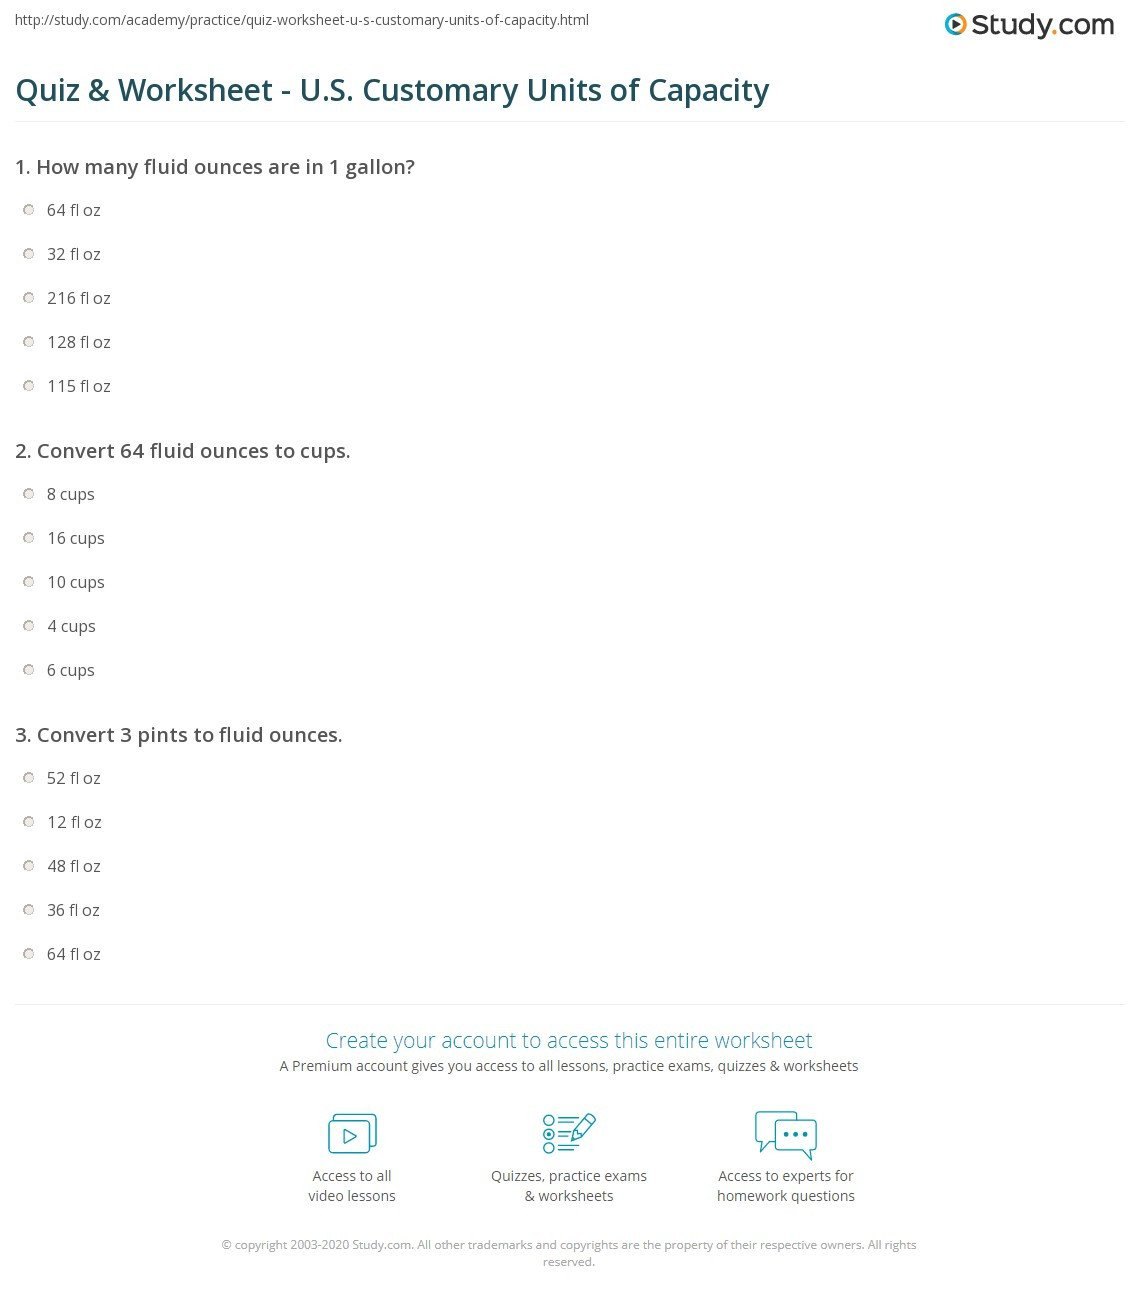 quiz worksheet u s customary units of capacity